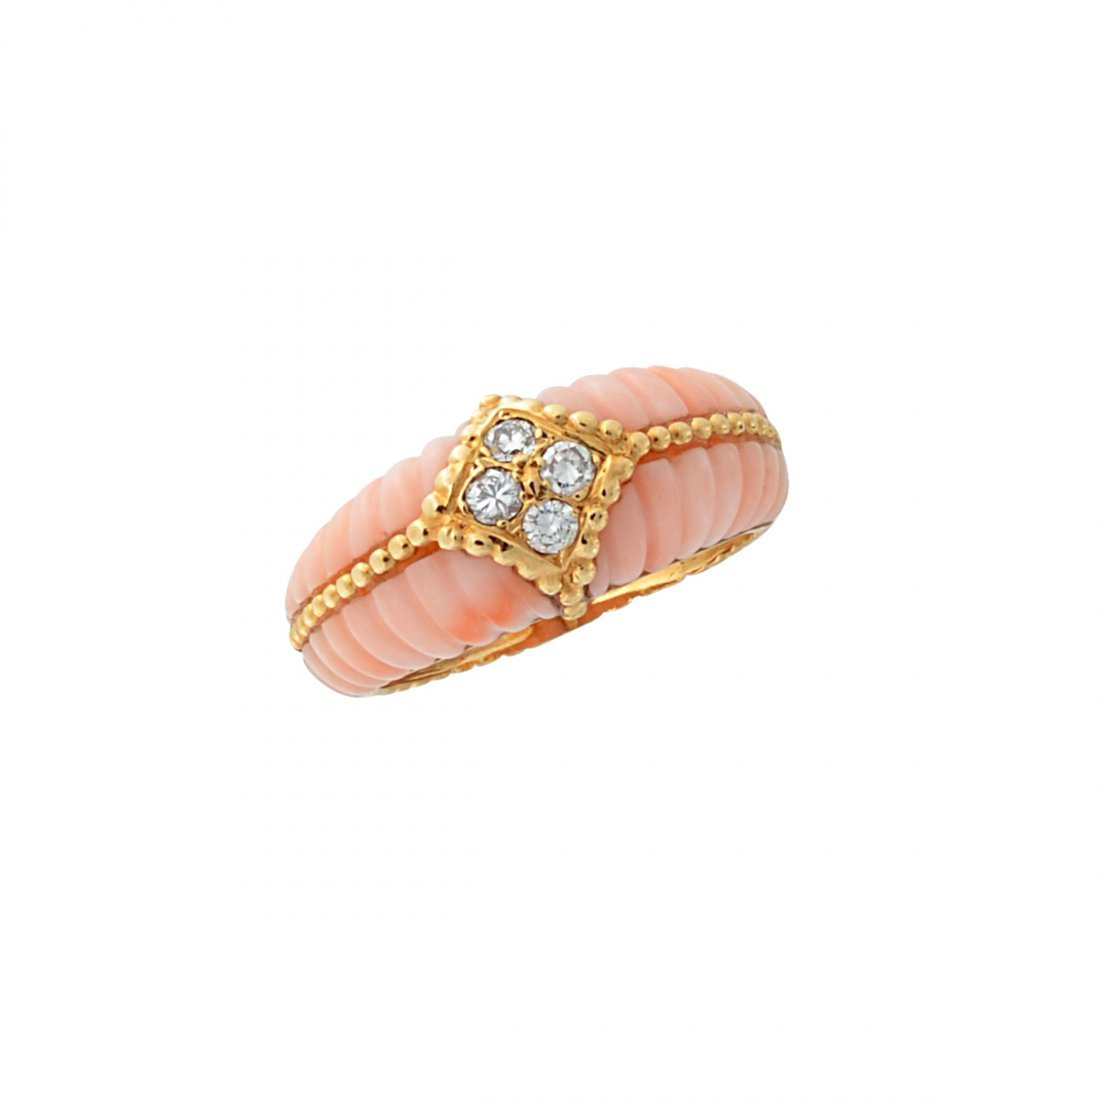 5: Van Cleef & Arpels coral ring accented with 2 round